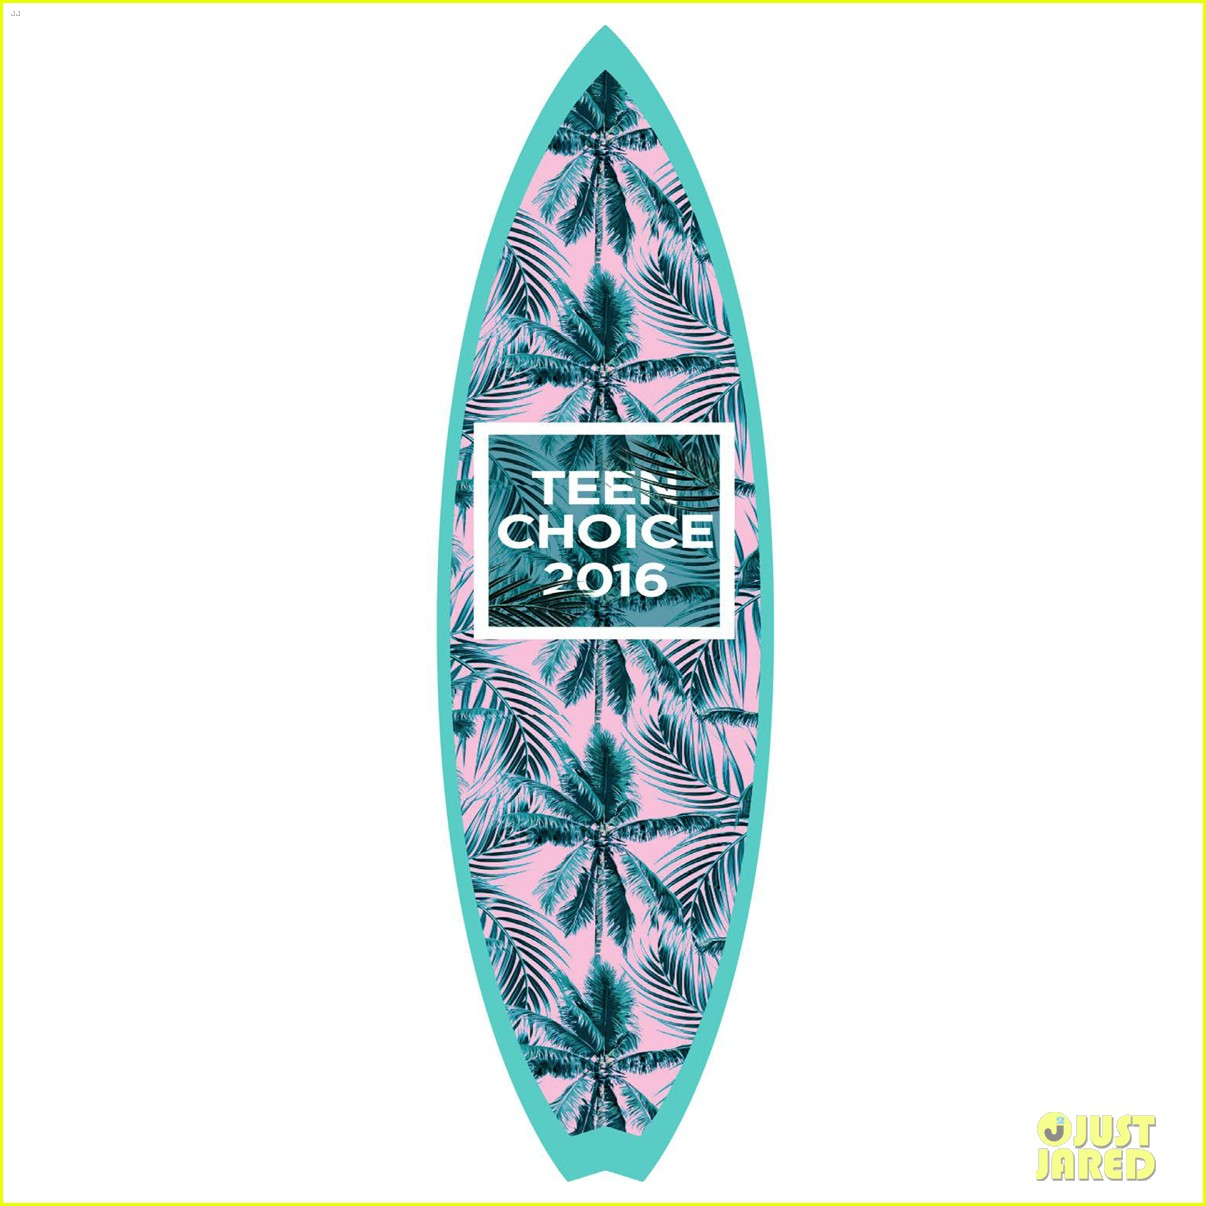 Choose the Surfboard Design for Teen Choice Awards 2016 ... Zac Efron Nyc